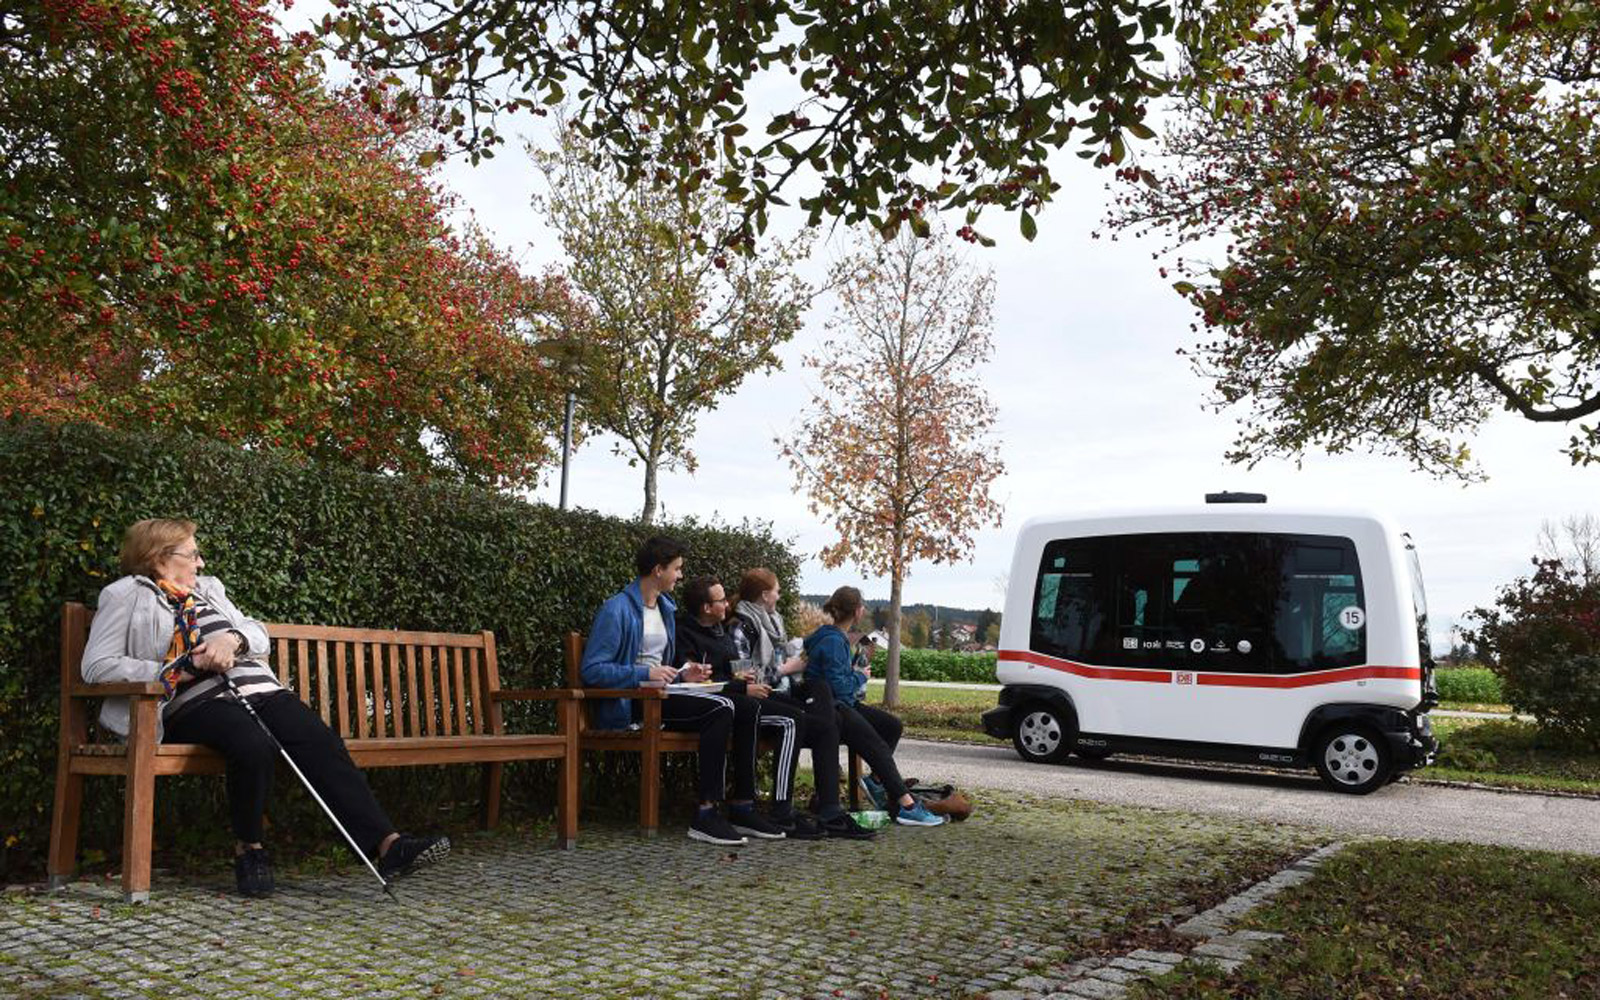 Germany's First Self-driving Bus Goes Straight to the Spa